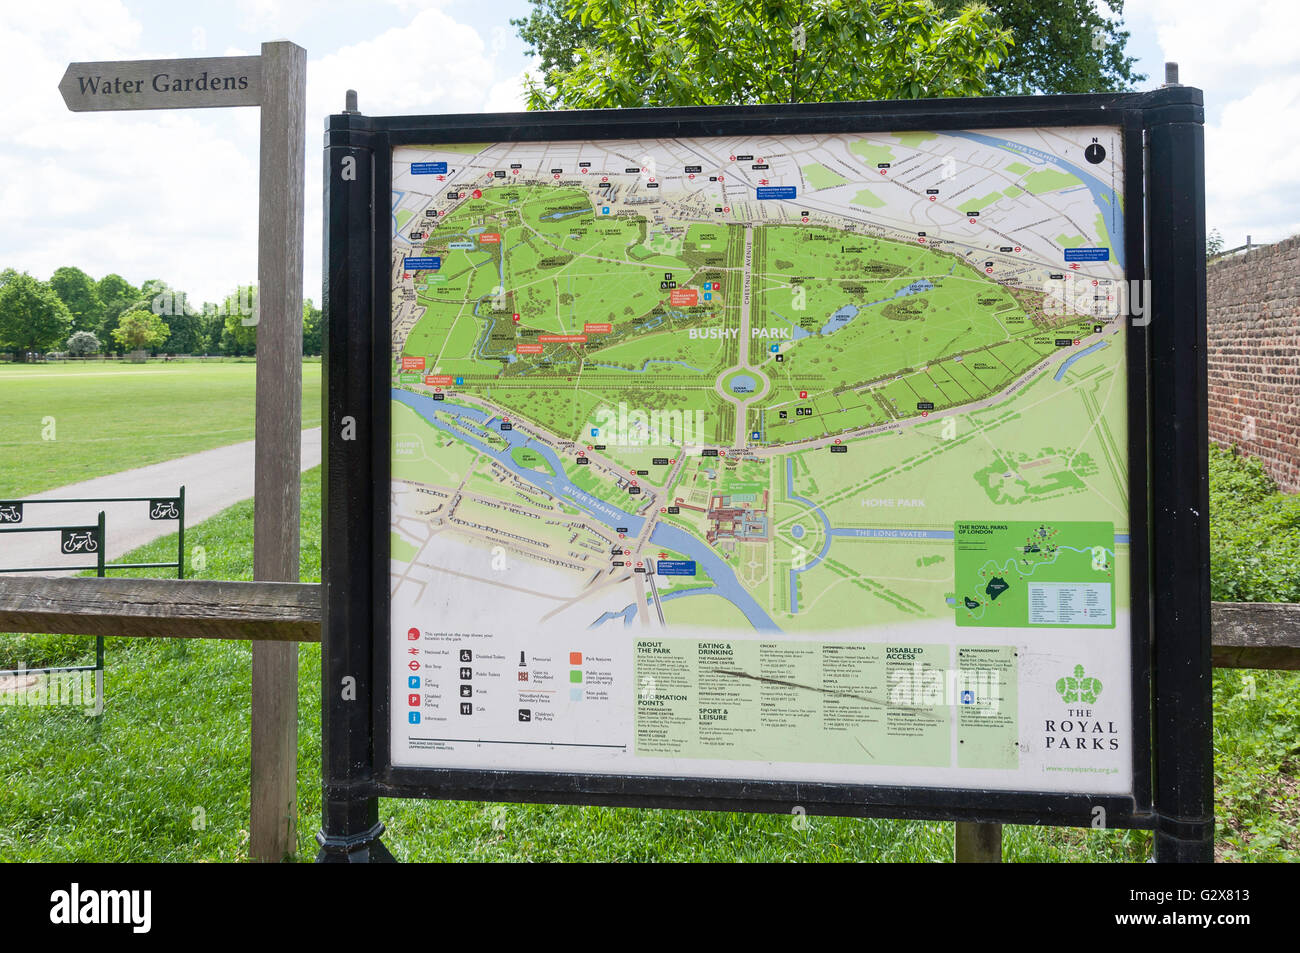 Bushy Park Map Bushy Park map at Hampton Hill Newgate, Hampton Hill, Borough of